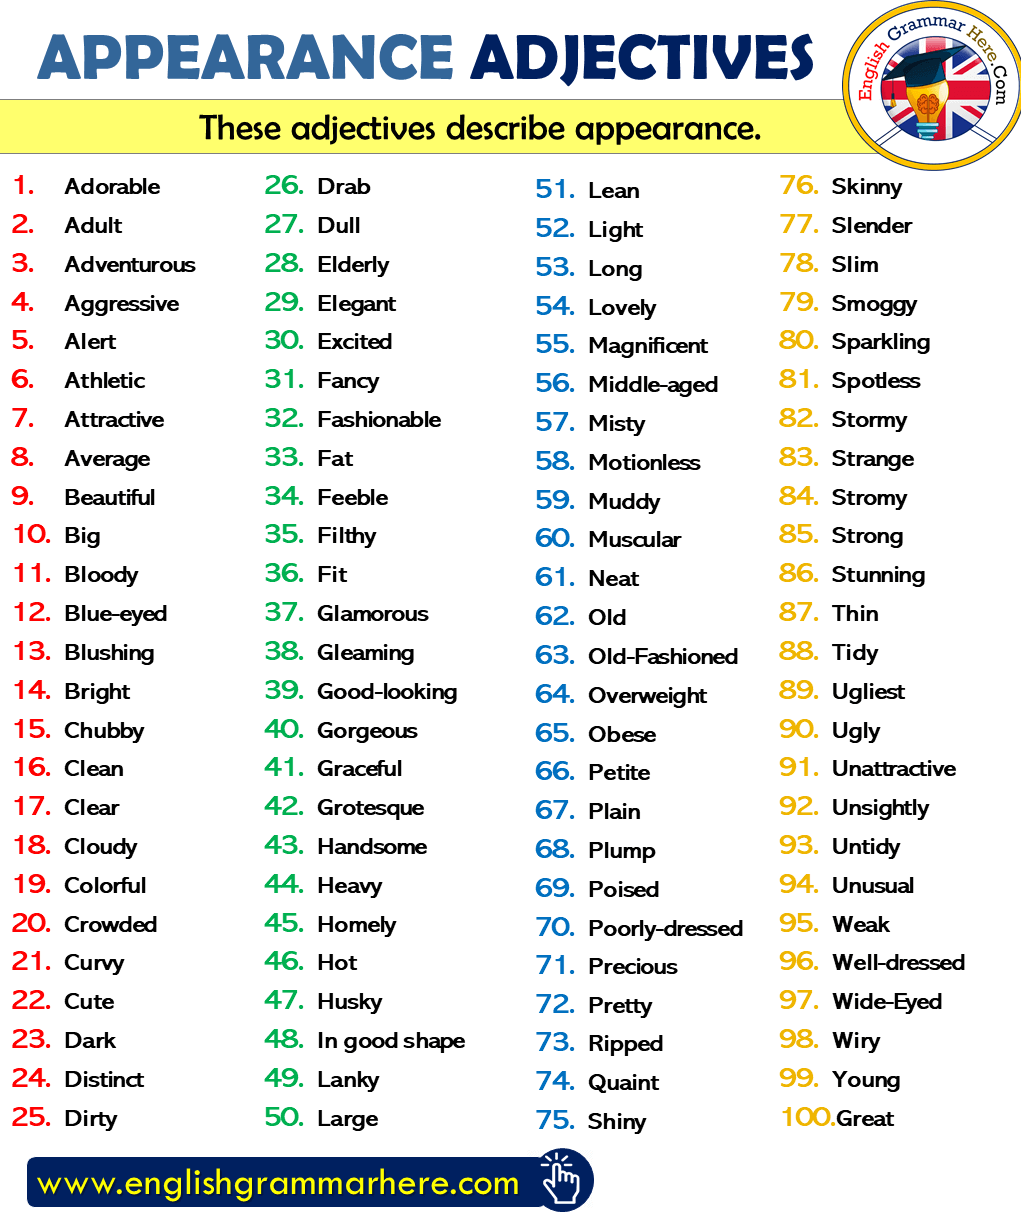 Appearance Adjectives List in English